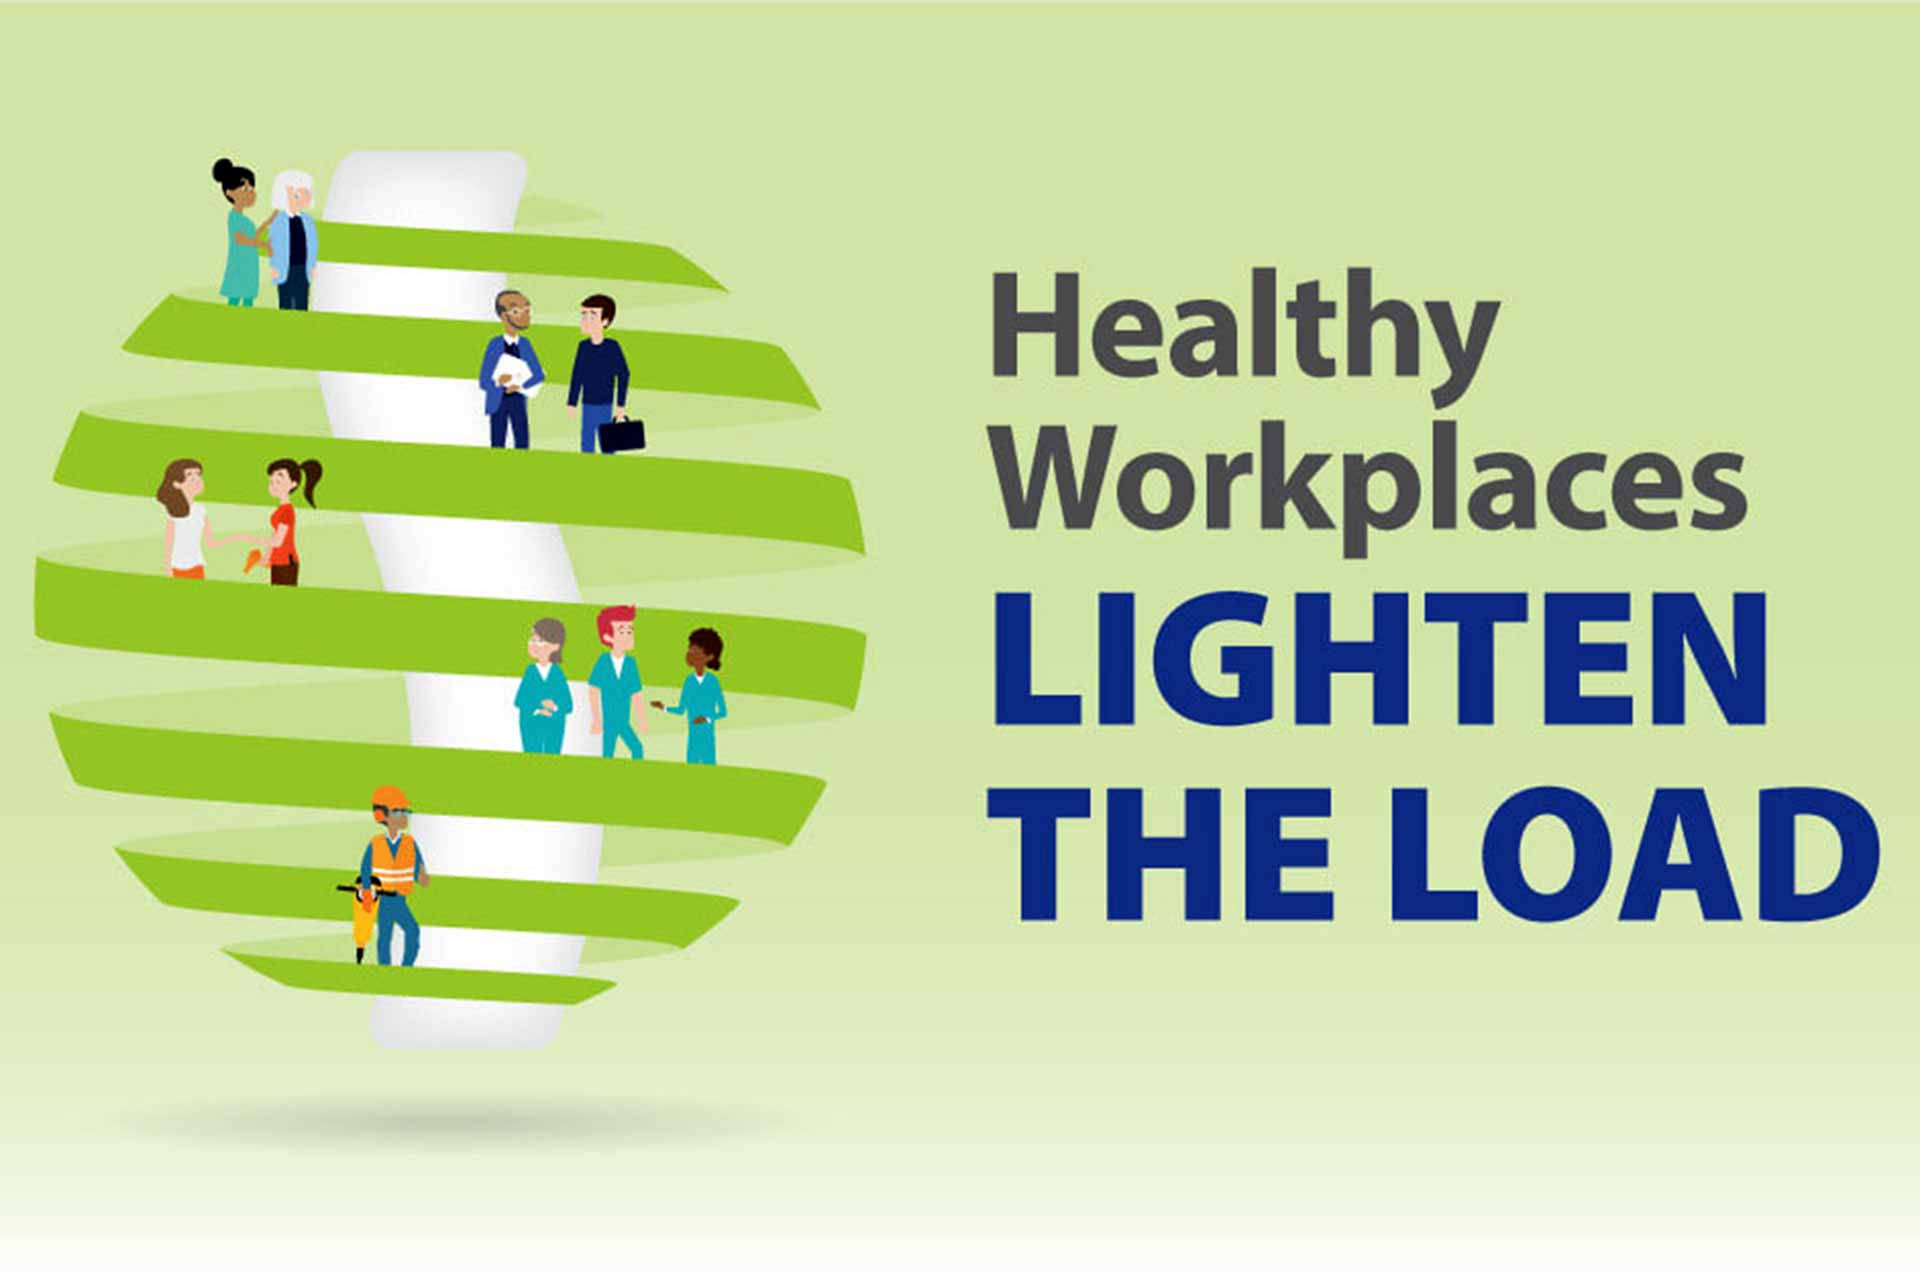 EU-OSHA launches Healthy Workplaces Campaign 2020-2022